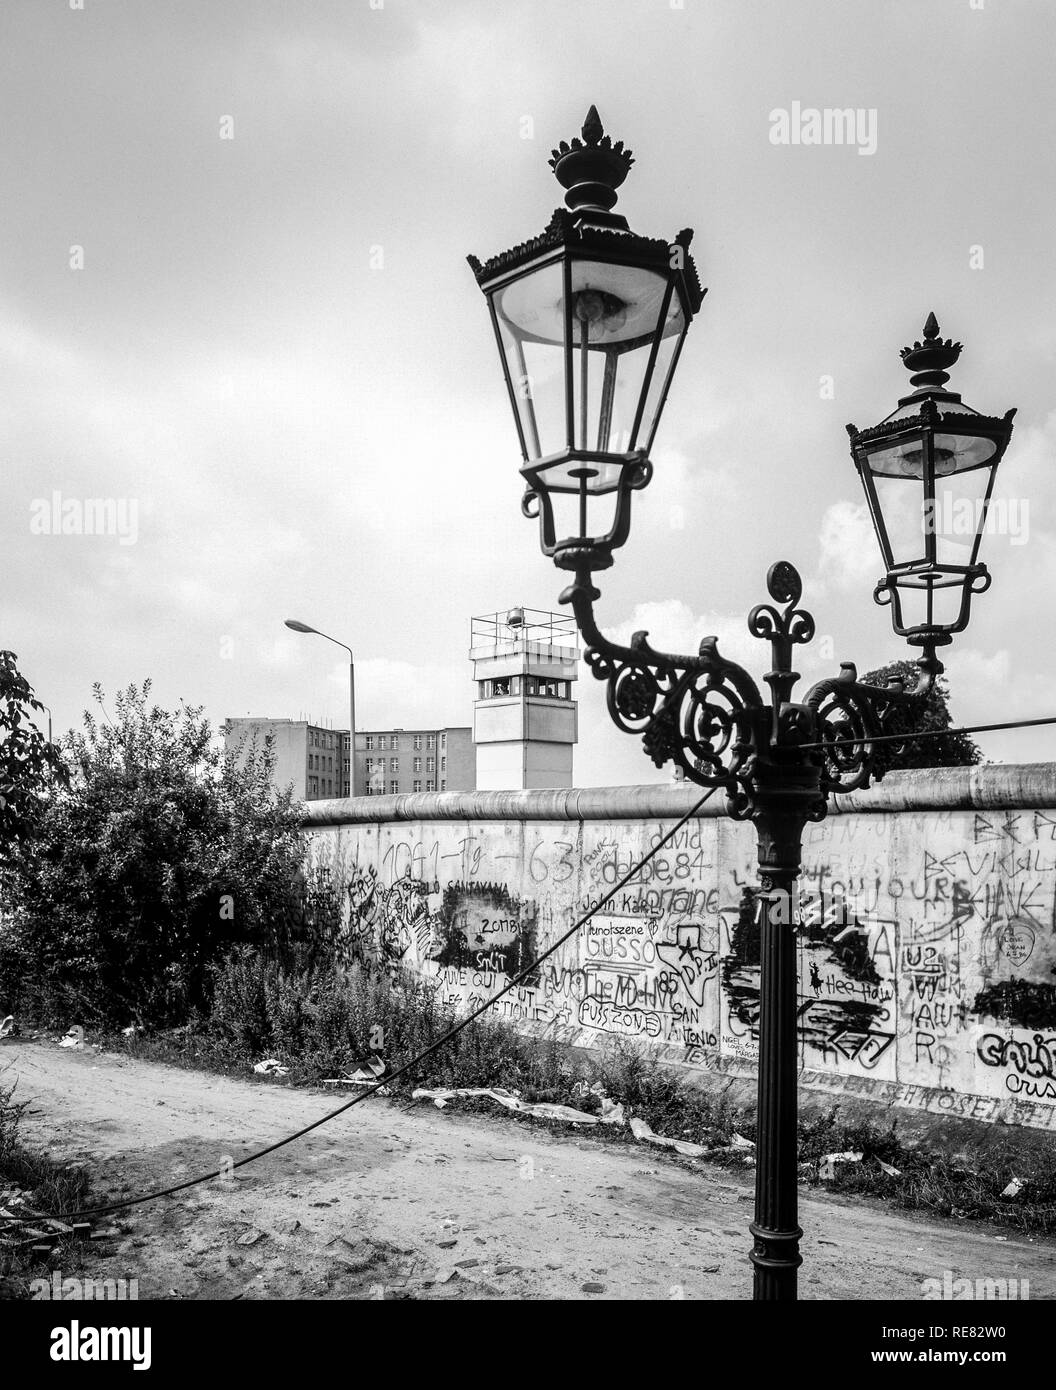 August 1986, Berlin Wall graffitis, street lamp, East Berlin watchtower, Zimmerstrasse street, Kreuzberg, West Berlin side, Germany, Europe, - Stock Image